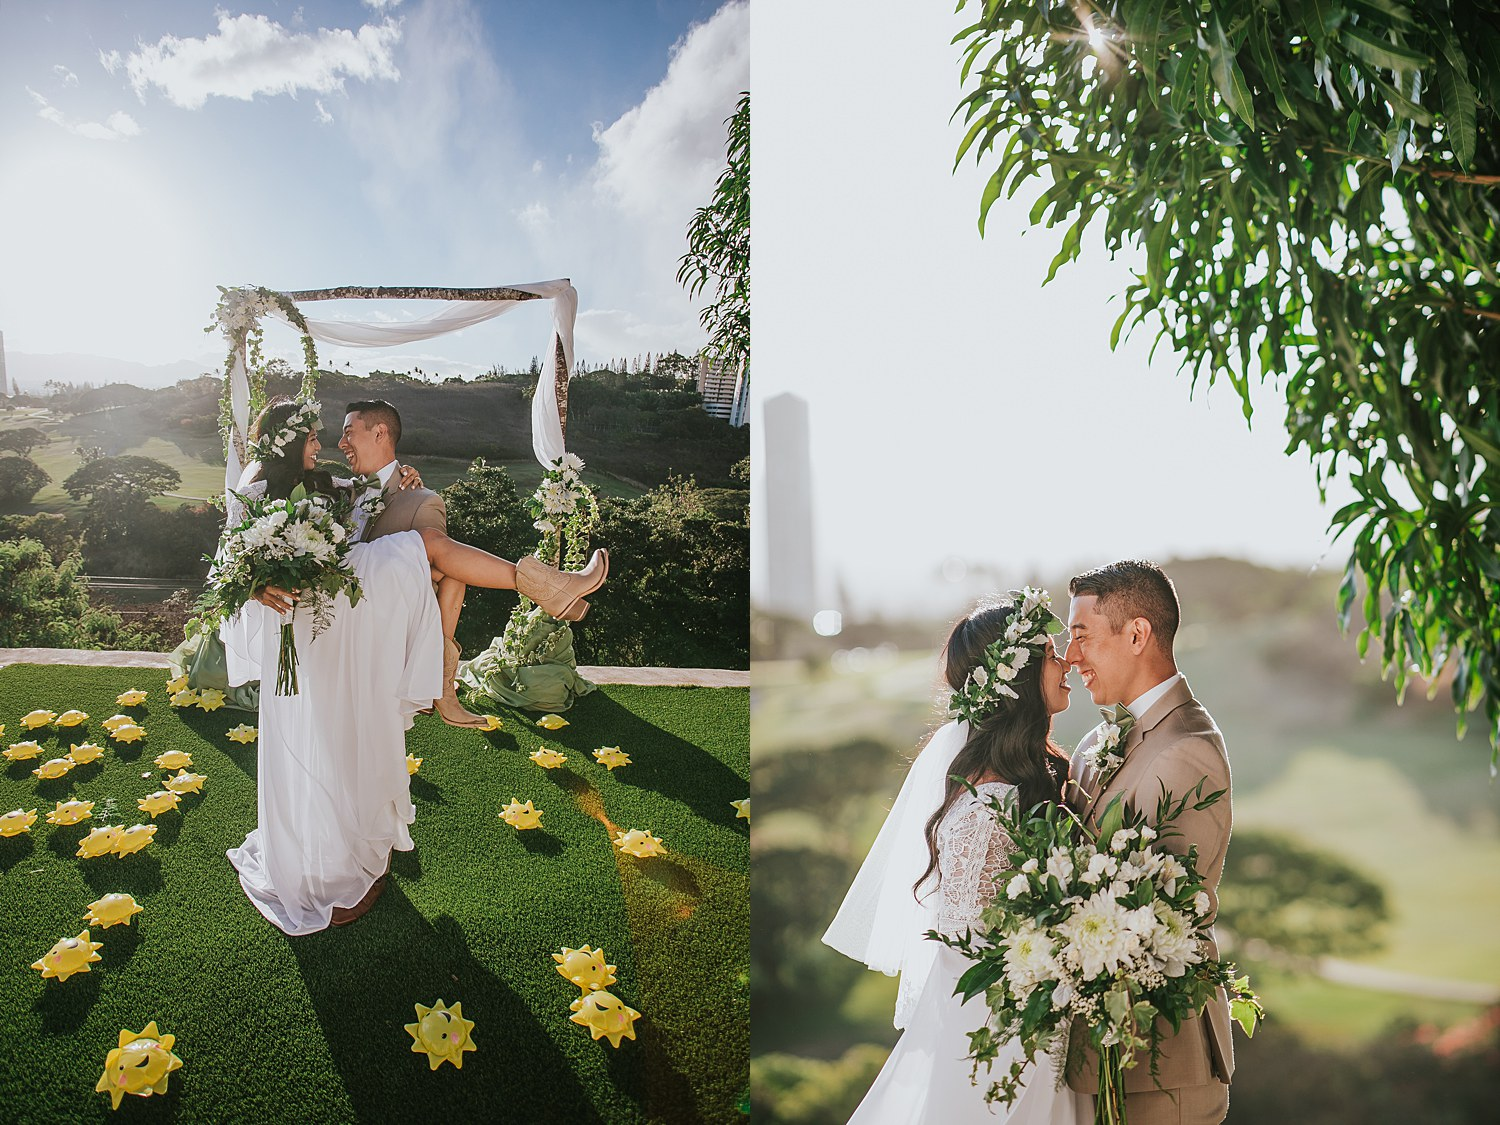 backyard wedding during hawaii's covid restrictions